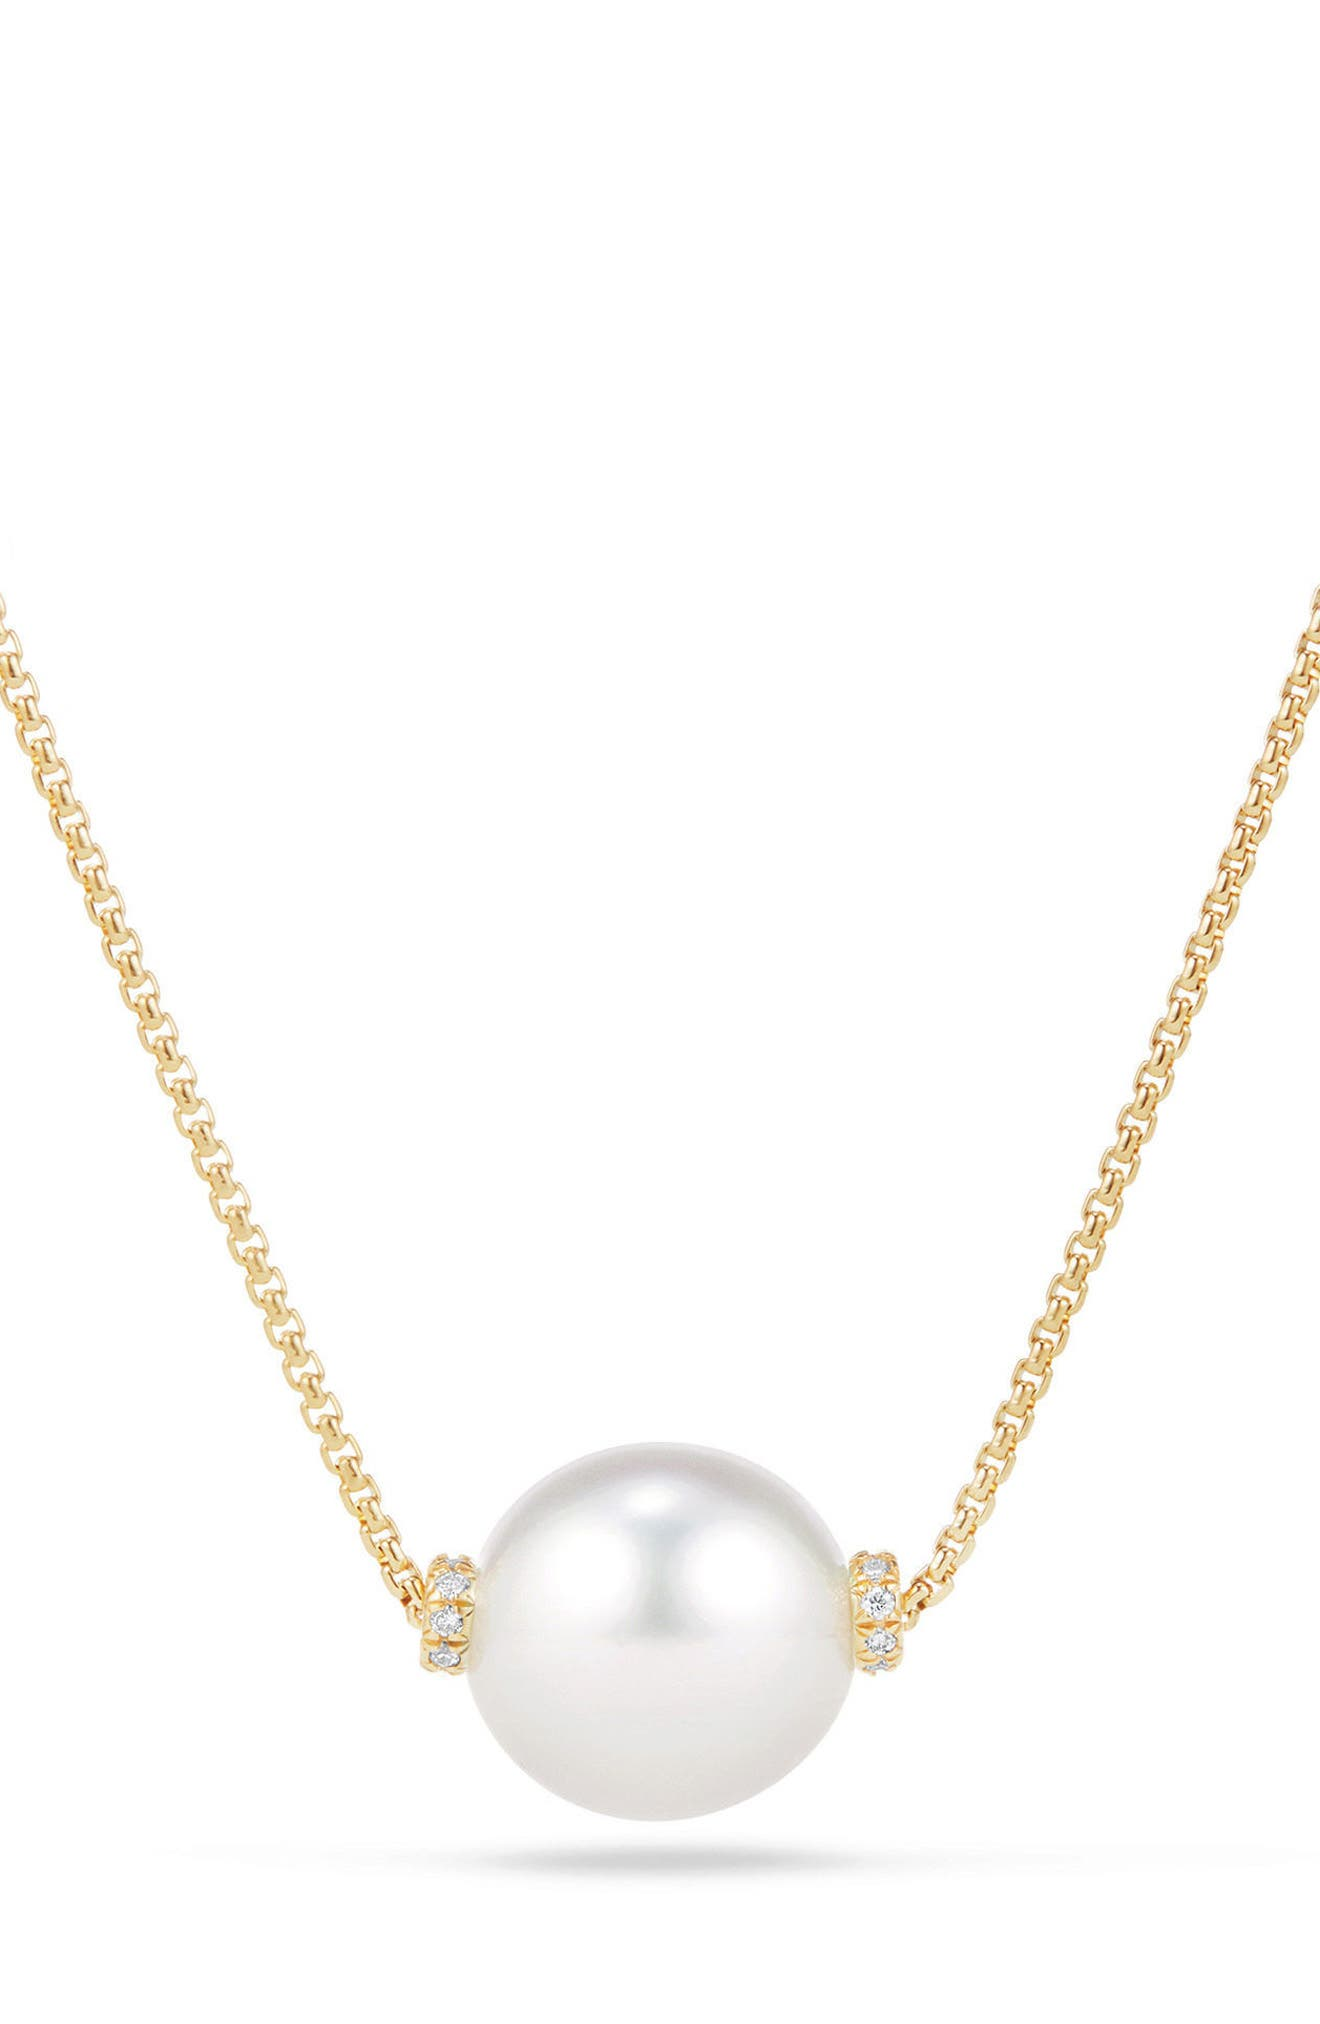 Solari Pearl Station Necklace,                             Main thumbnail 1, color,                             YELLOW GOLD/ SOUTH SEA WHITE